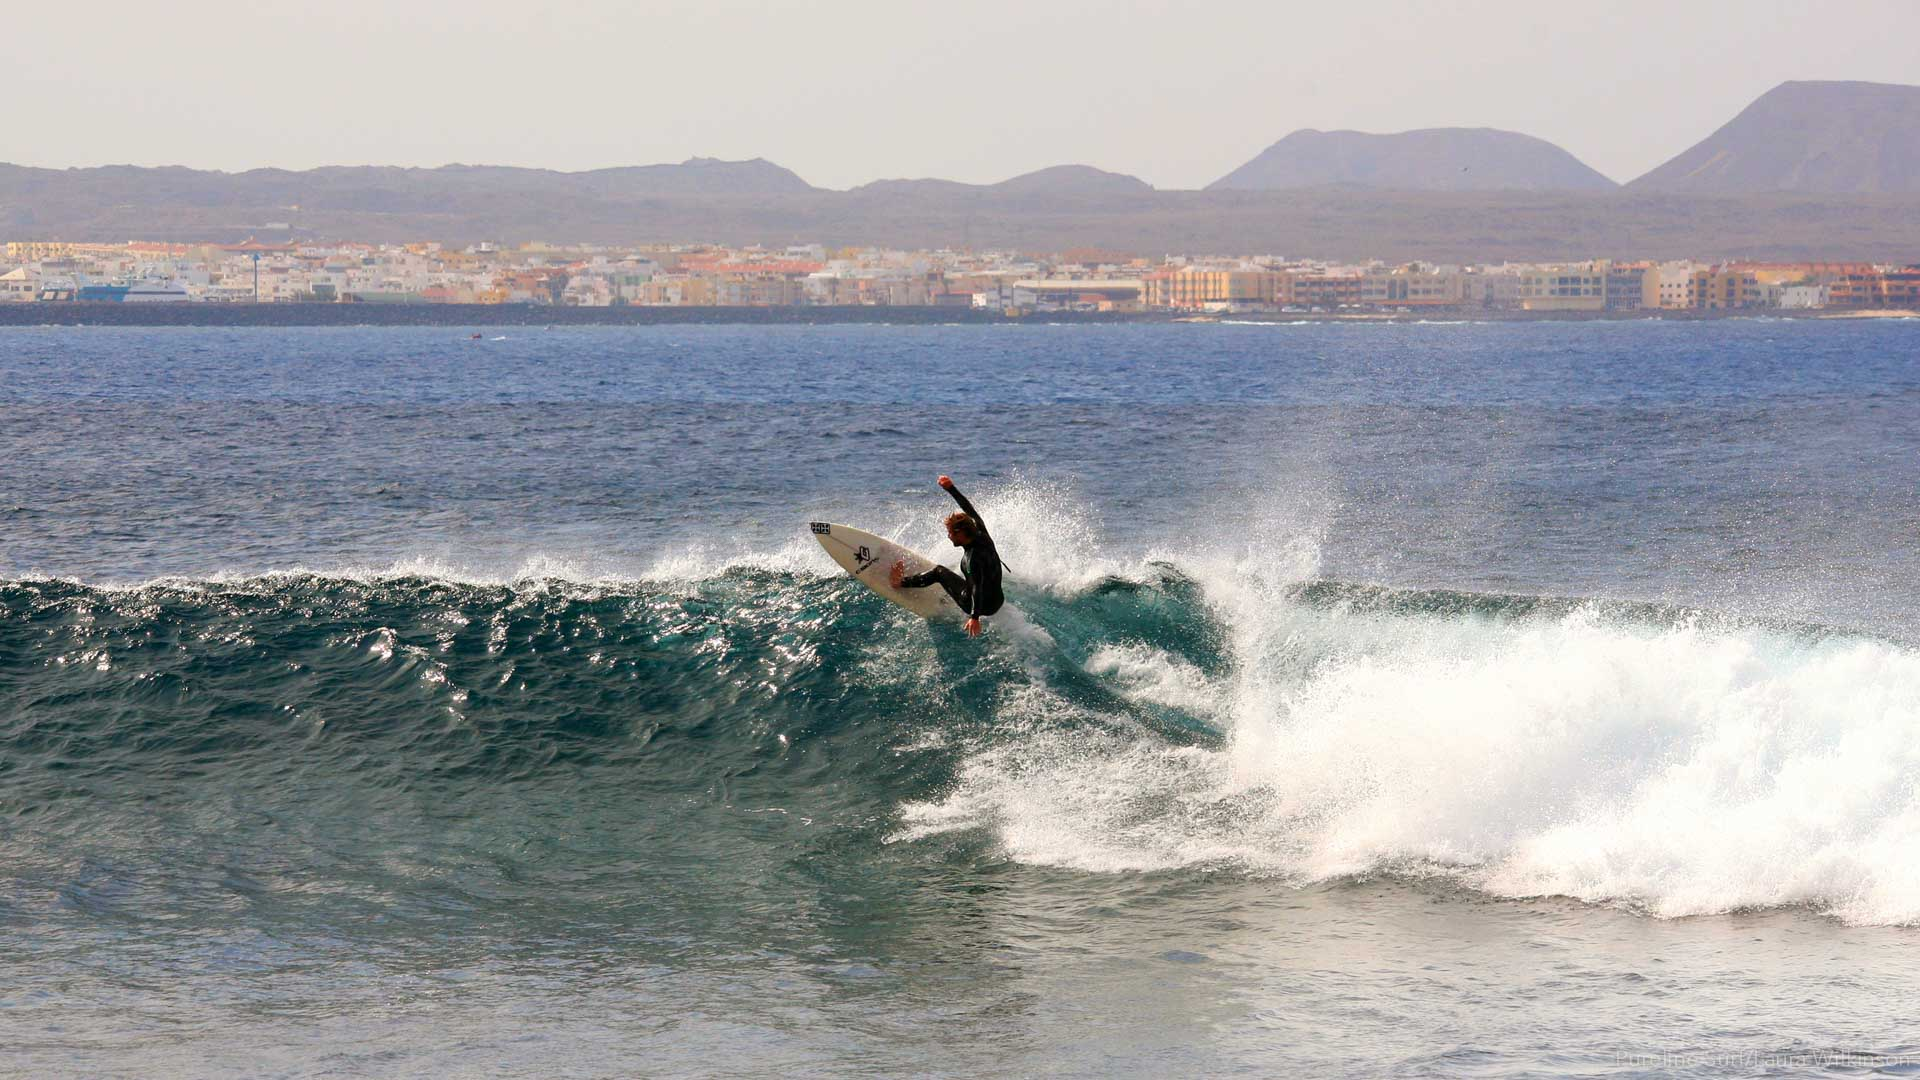 A Pureline surfer performing a forehand re-entry at Lobos point break in the Canary Islands with the town of Corralejo in the background.